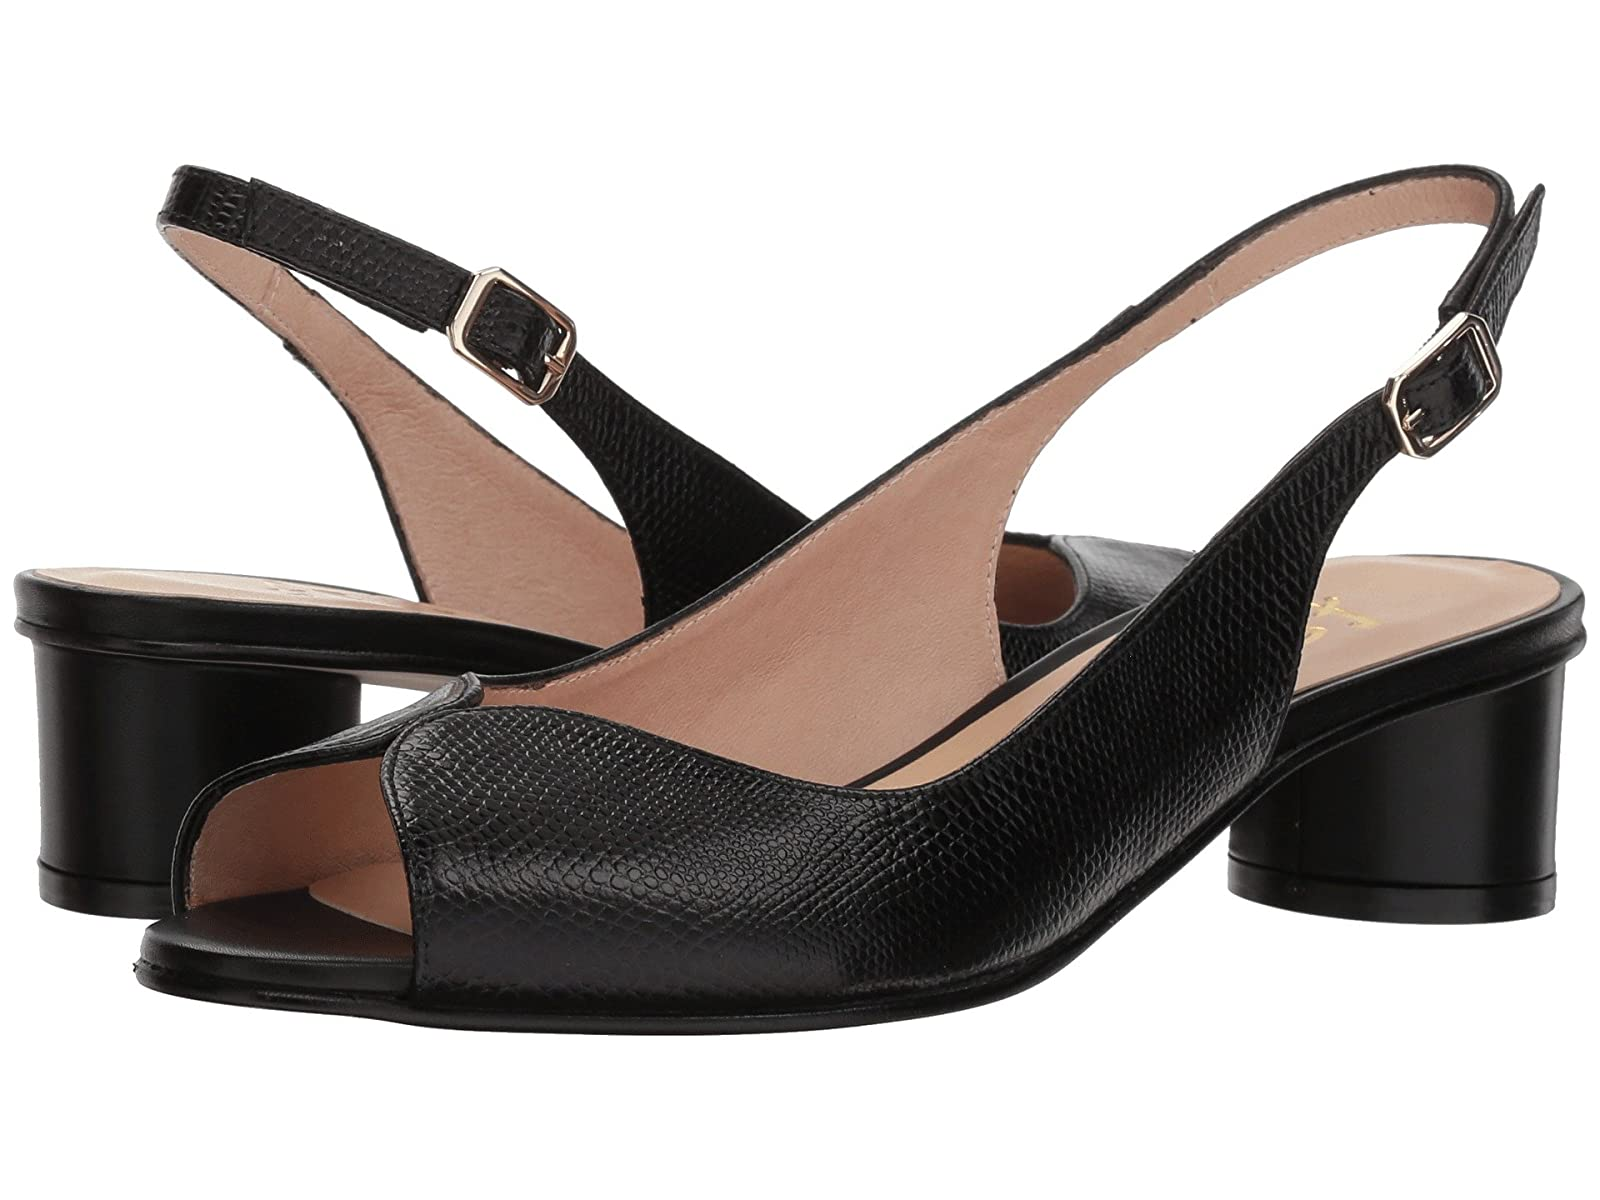 French Sole BorderlineCheap and distinctive eye-catching shoes